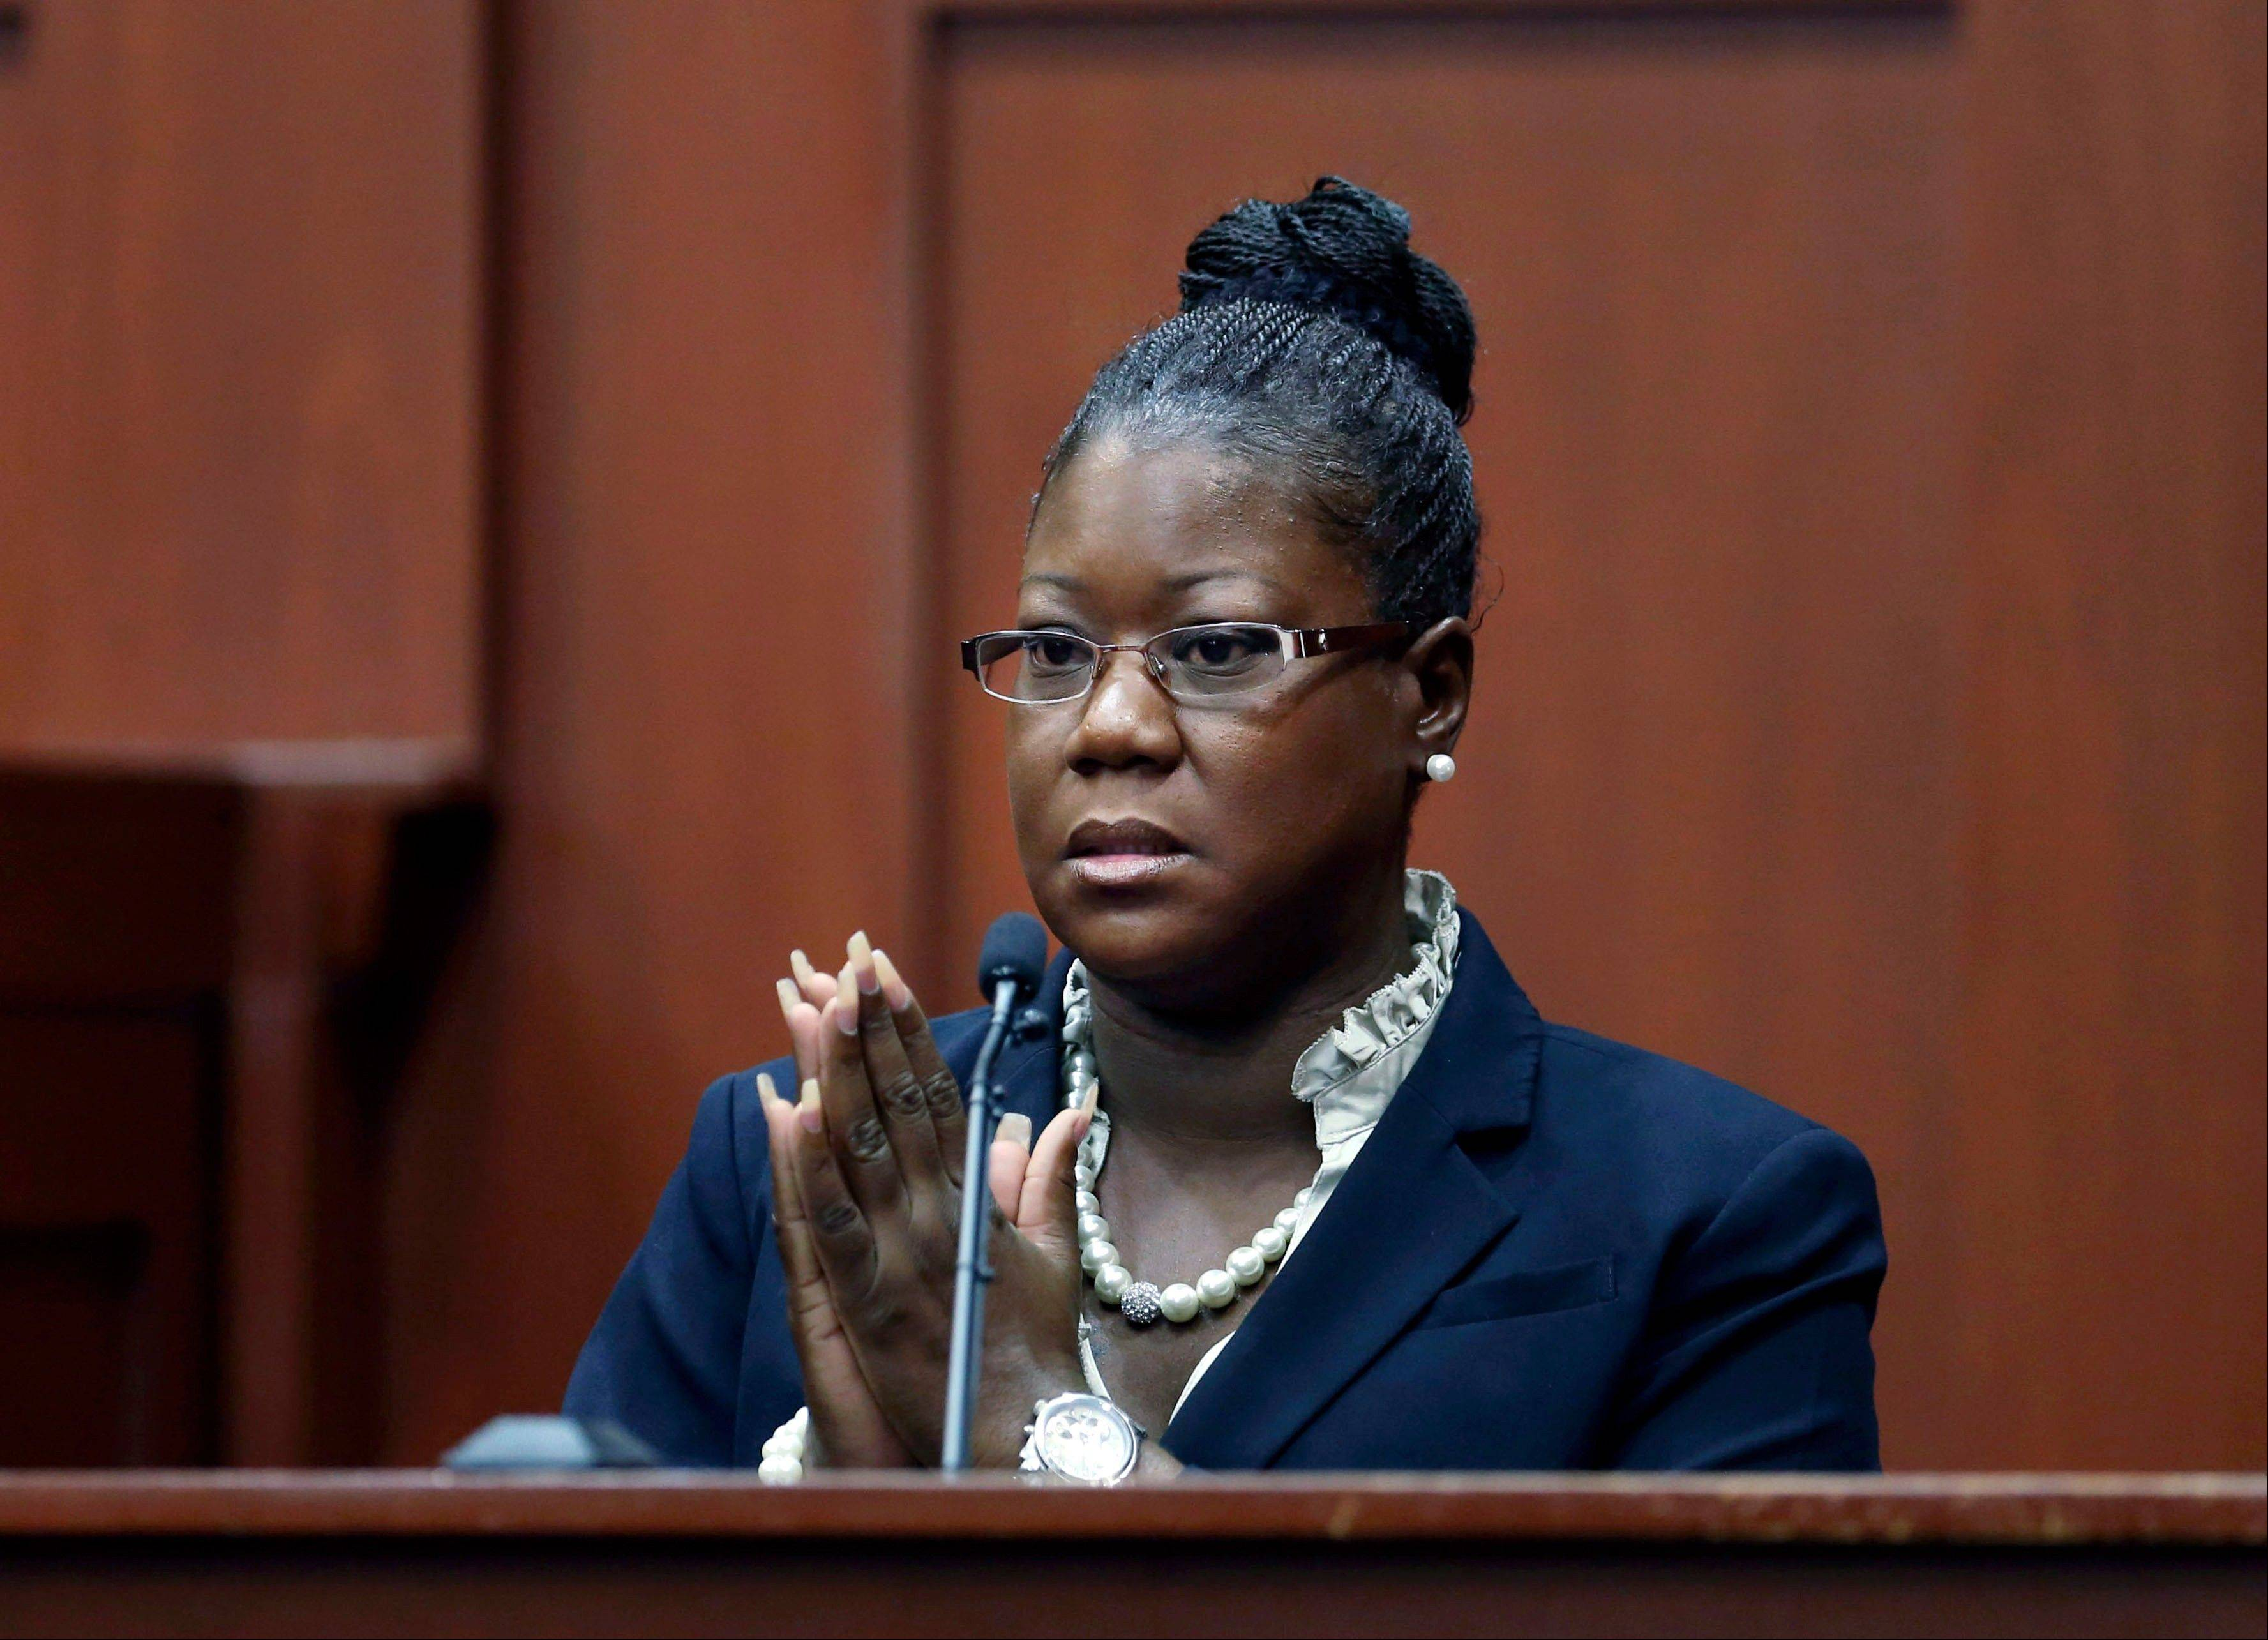 Trayvon Martin's mother, Sybrina Fulton, takes the stand during George Zimmerman's trial in Seminole County circuit court, Friday, July 5, 2013, in Sanford, Fla. Zimmerman has been charged with second-degree murder for the 2012 shooting death of Trayvon Martin.